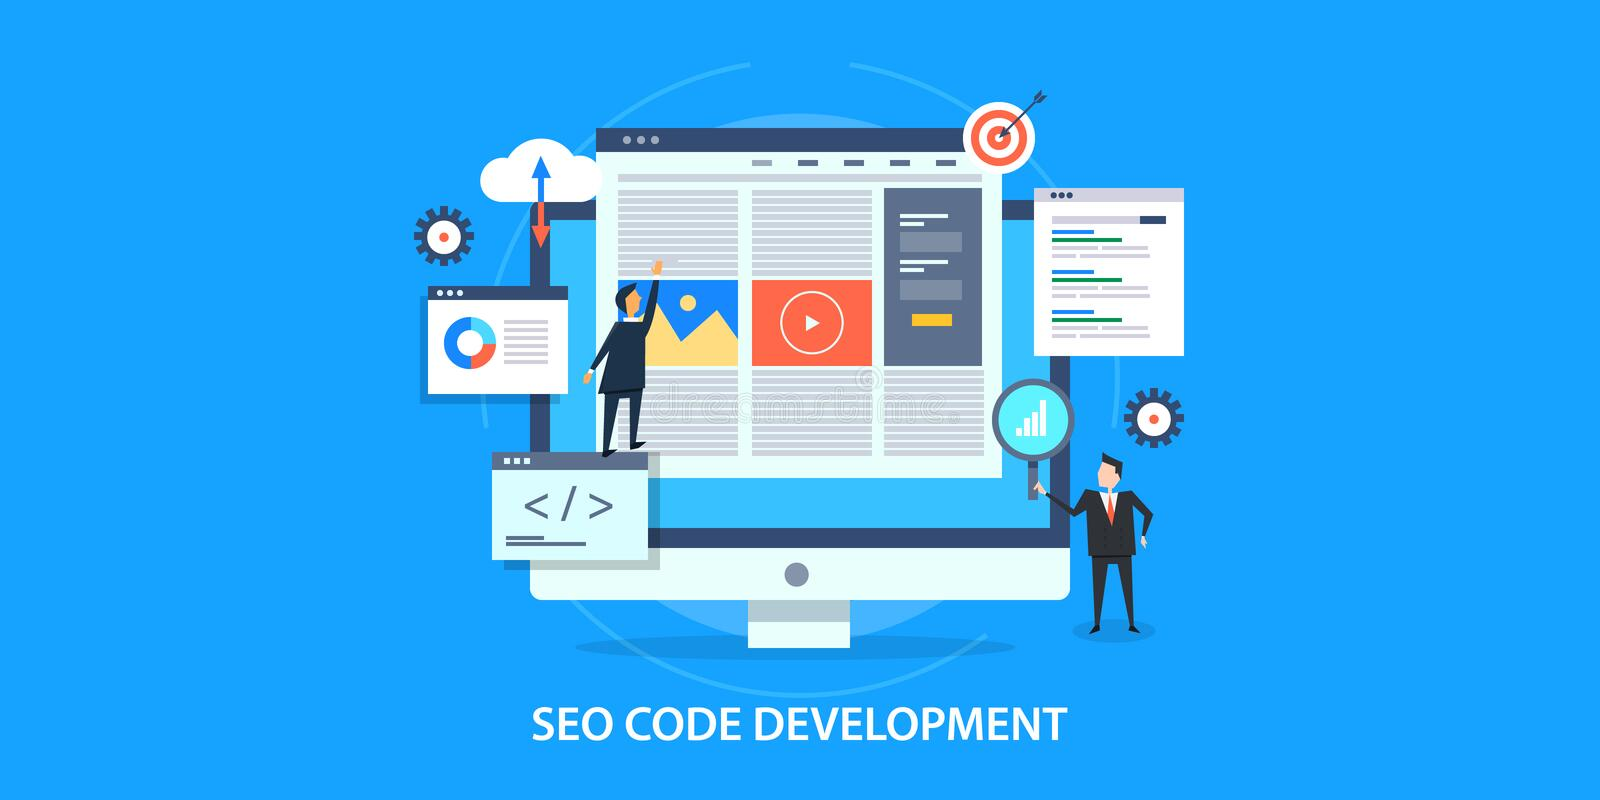 Flat design concept of search engine optimization, website seo development. Businessmen optimizing website for better search engine visibility, website code royalty free illustration